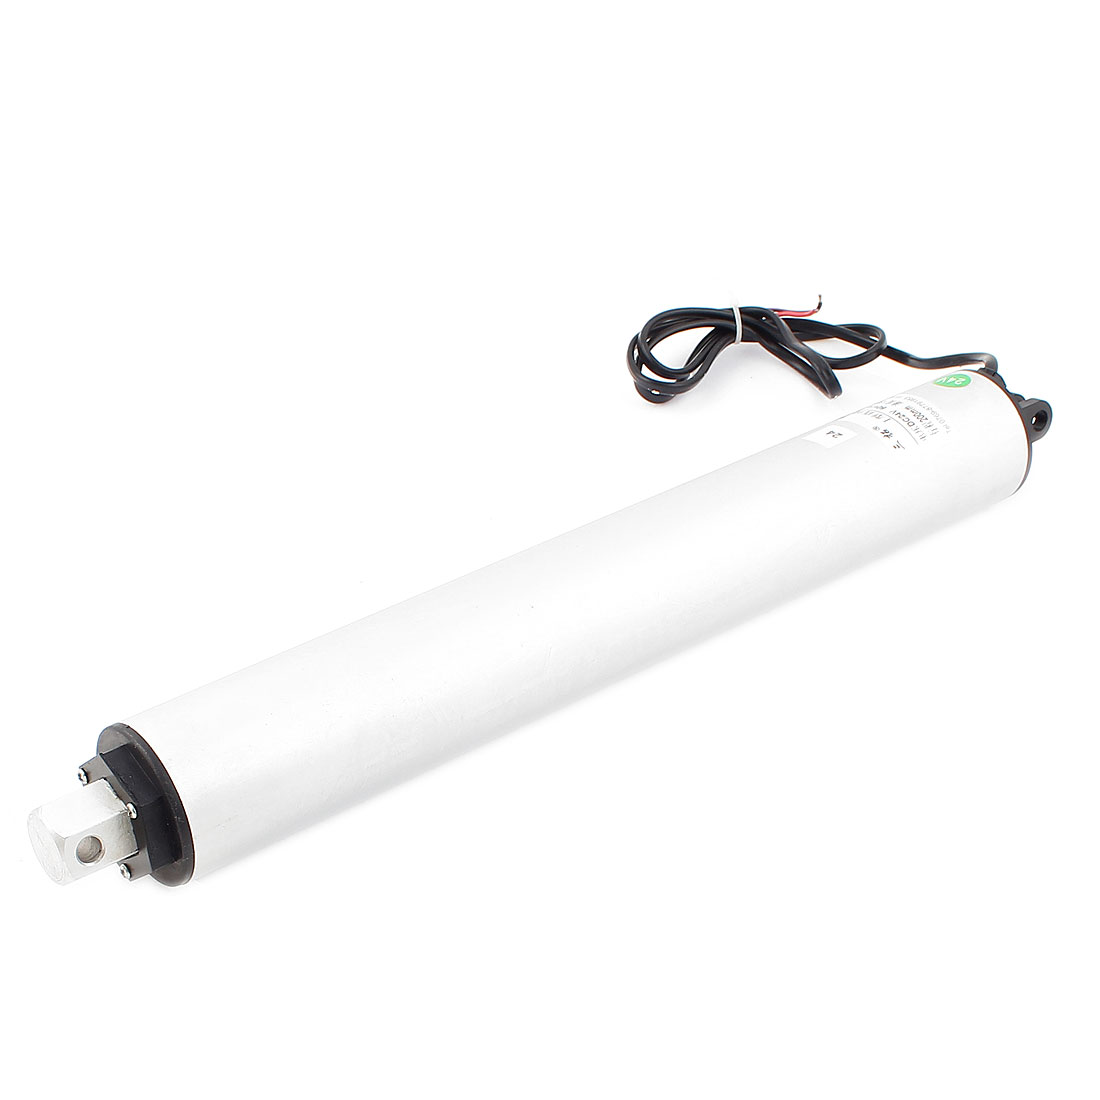 """DC 24V 8"""" Stroke Force 120N Electric Tubular Linear Actuator Motor 130mm/s - image 3 of 3"""